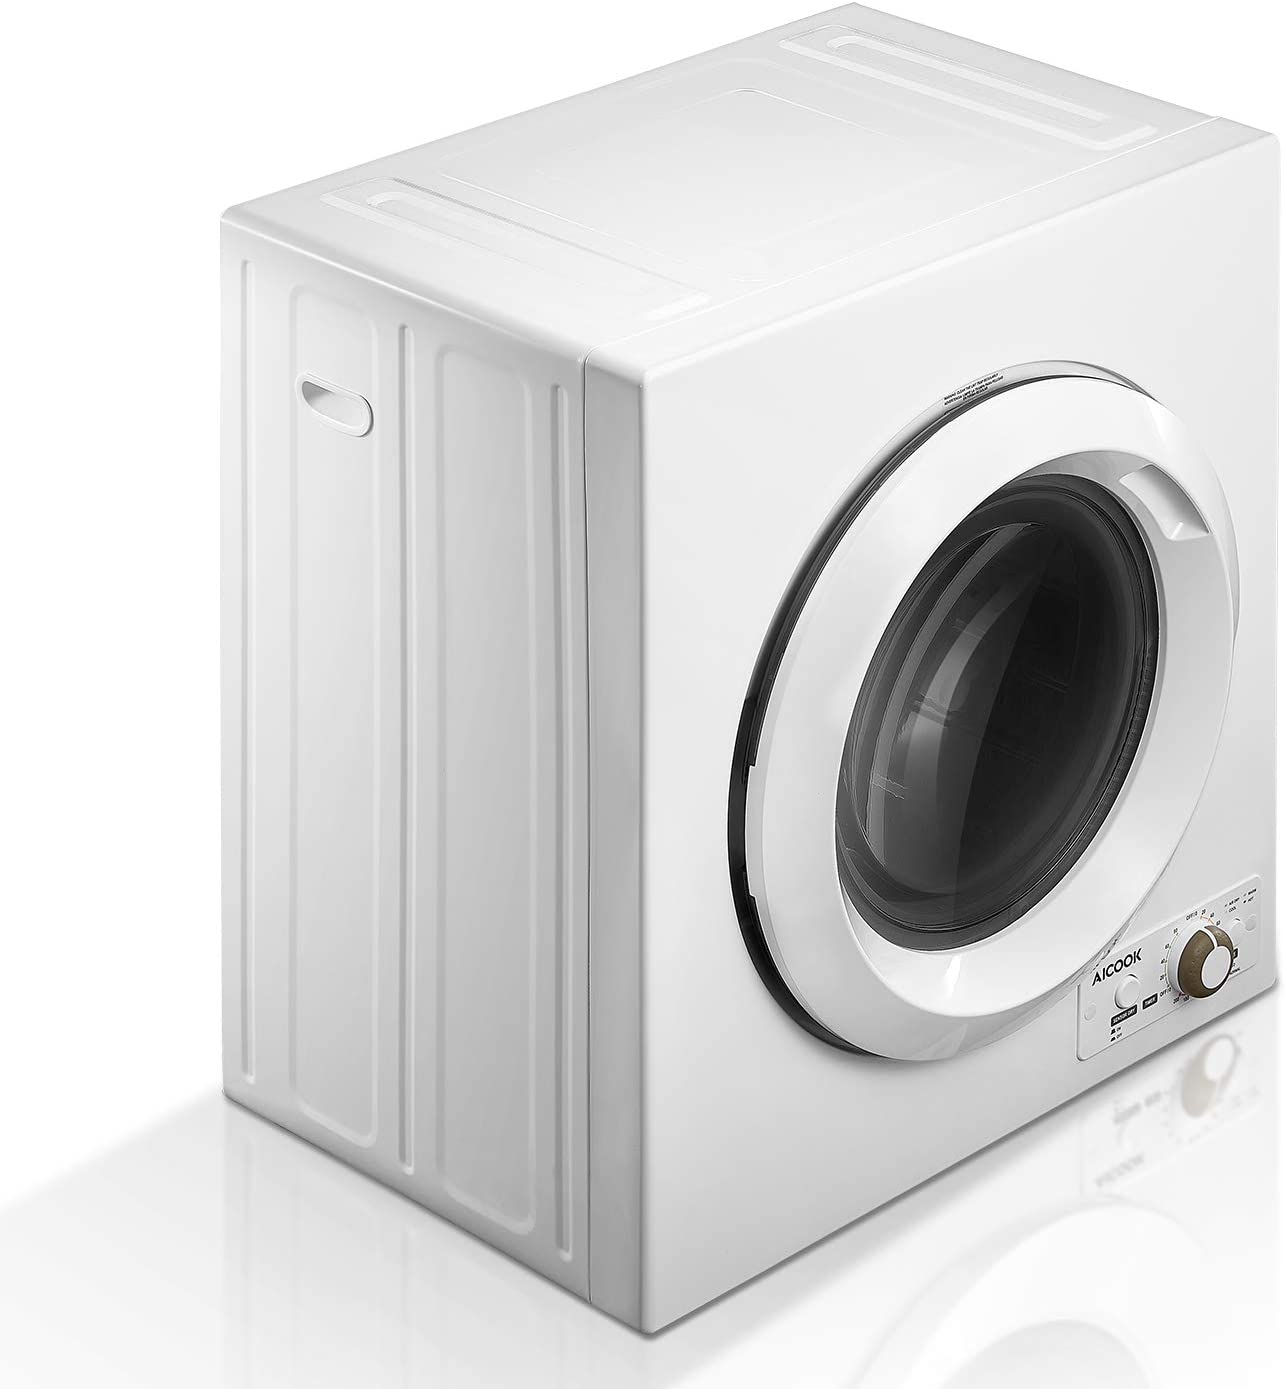 AICOOK Clothes Dryer, 9 lbs Load Portable Dryer for Apartments, 2.65 Cu.Ft 1400W Compact Laundry Dryer with Sensor System, Stainless Steel Tub and 4 Automatic Drying Mode, 110V & 120V